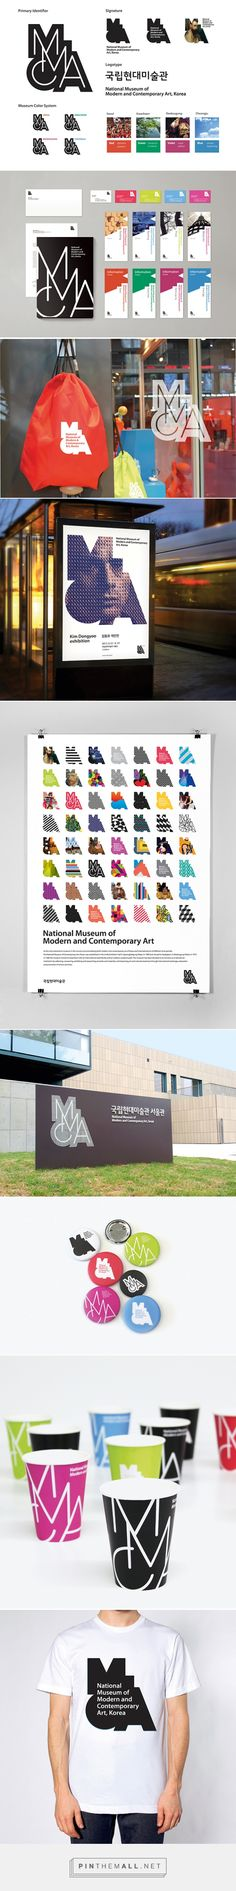 MMCA (National Museum of Modern and Contemporary Art, Korea) - 2013 | work | Red Dot Award: Communication Design - created on 2015-04-24 13:38:09